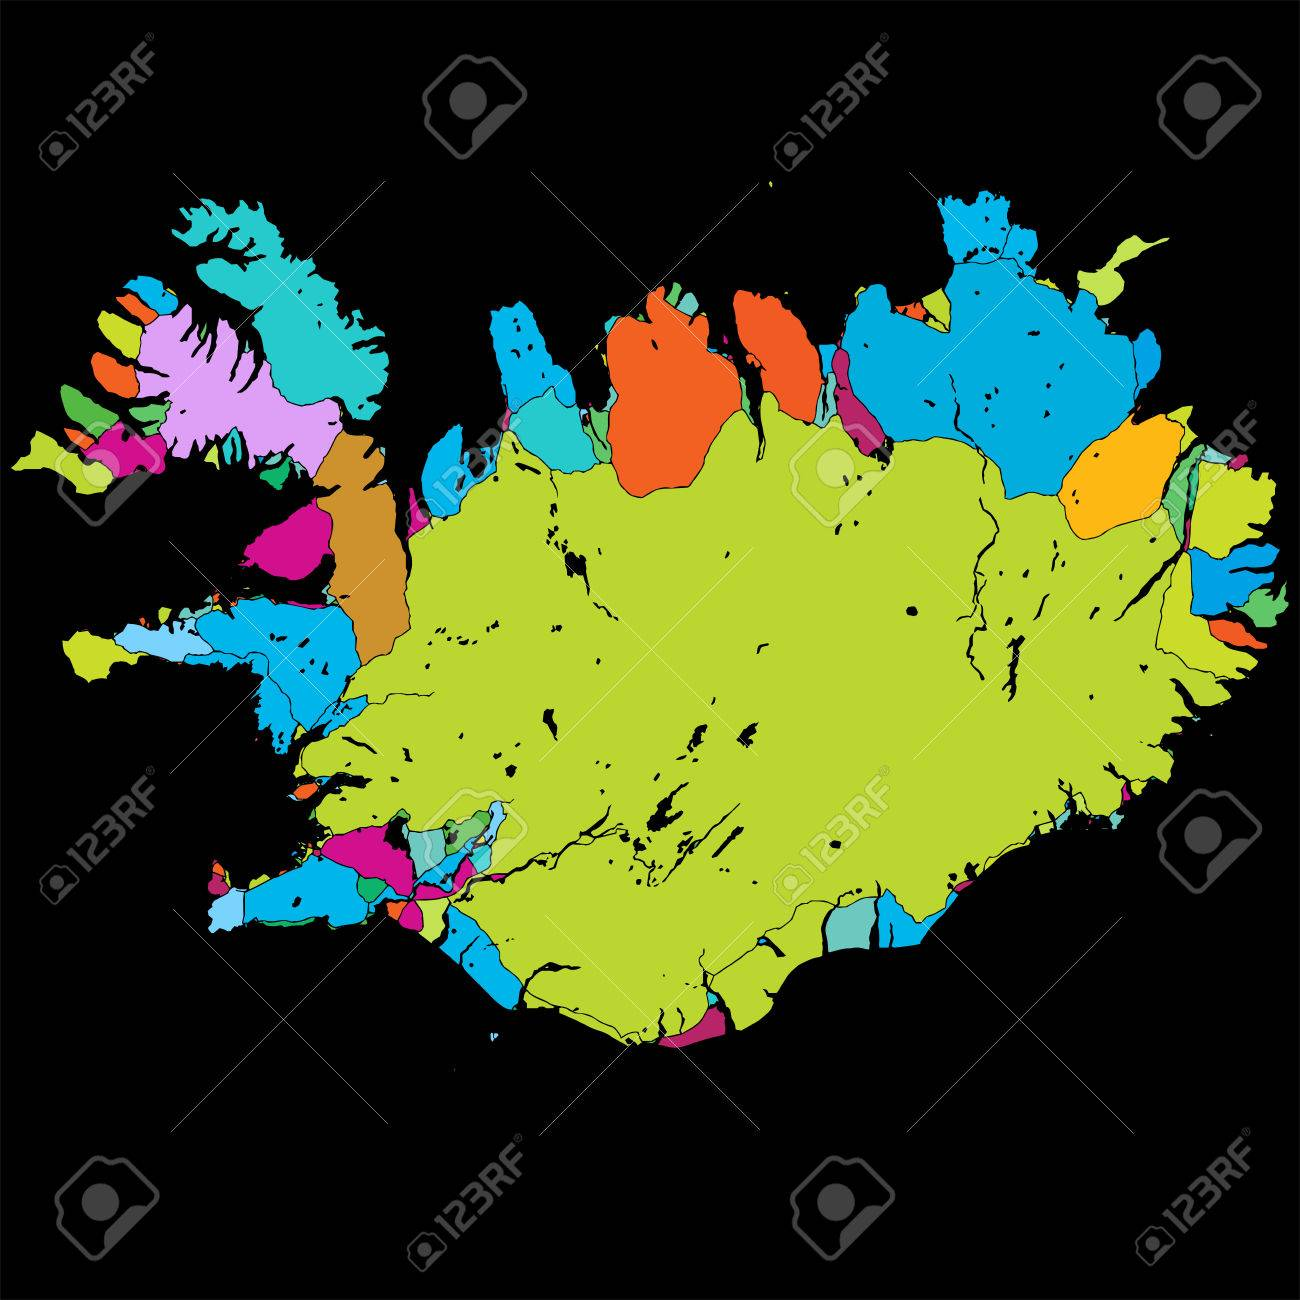 photograph relating to Iceland Map Printable identify Iceland Island Colourful Vector Map upon Black, printable determine..